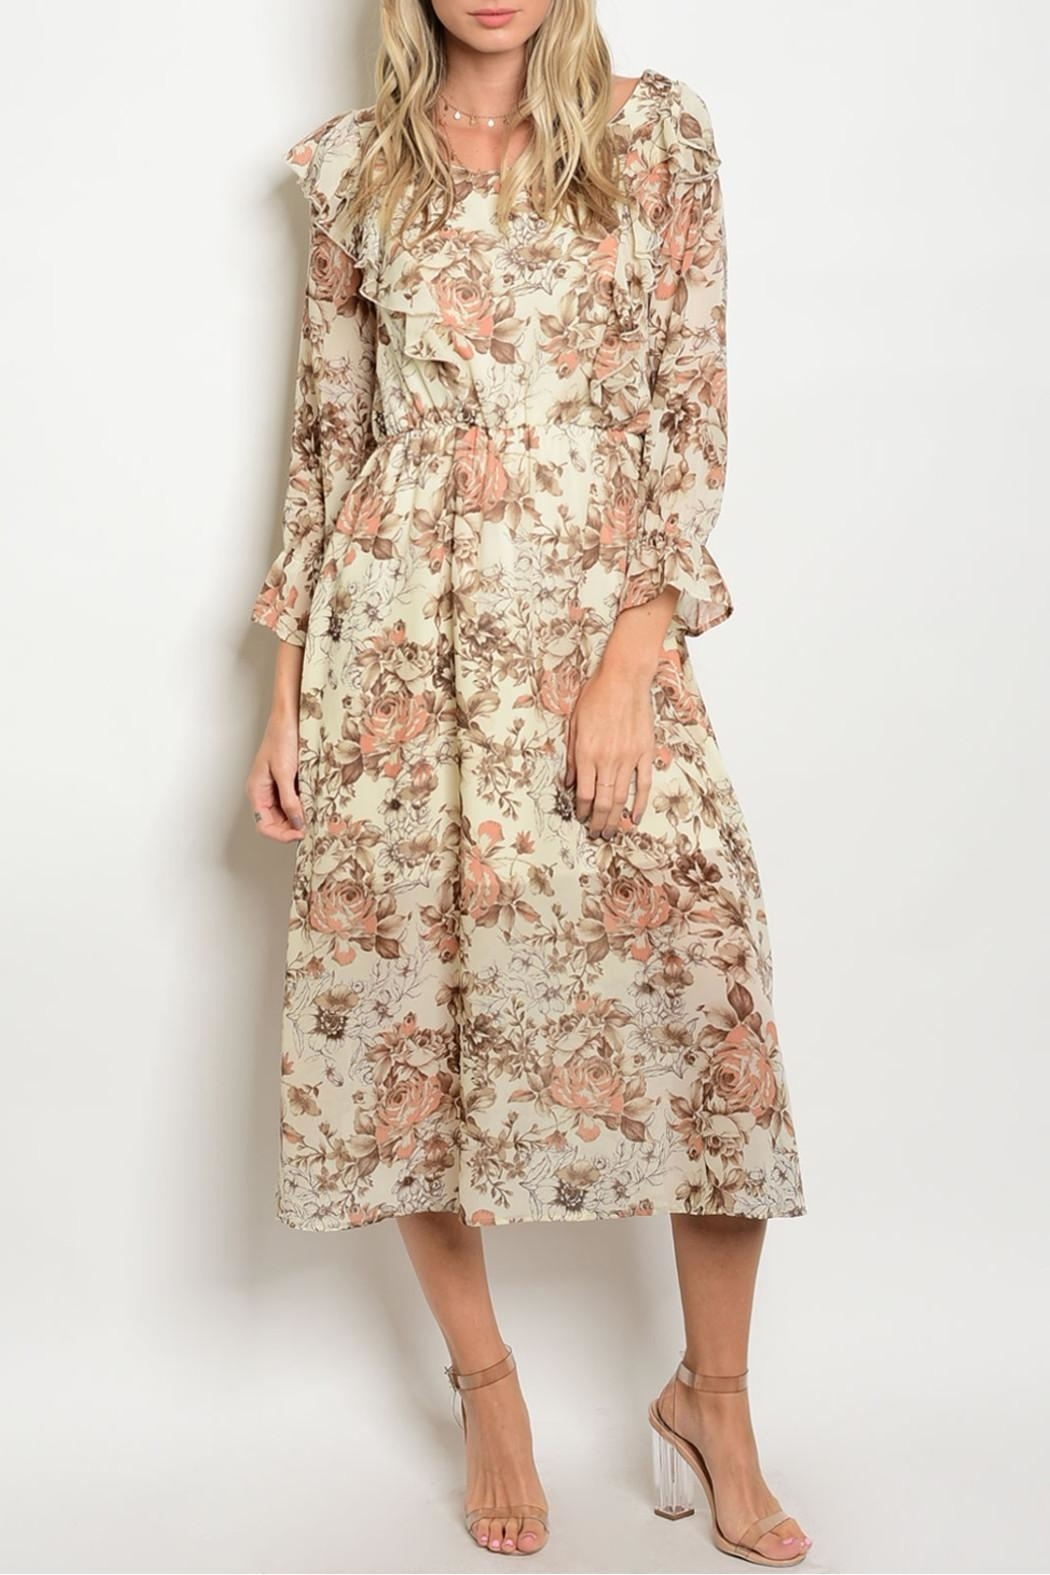 One Story Autumn Floral Ruffle Dress - Main Image